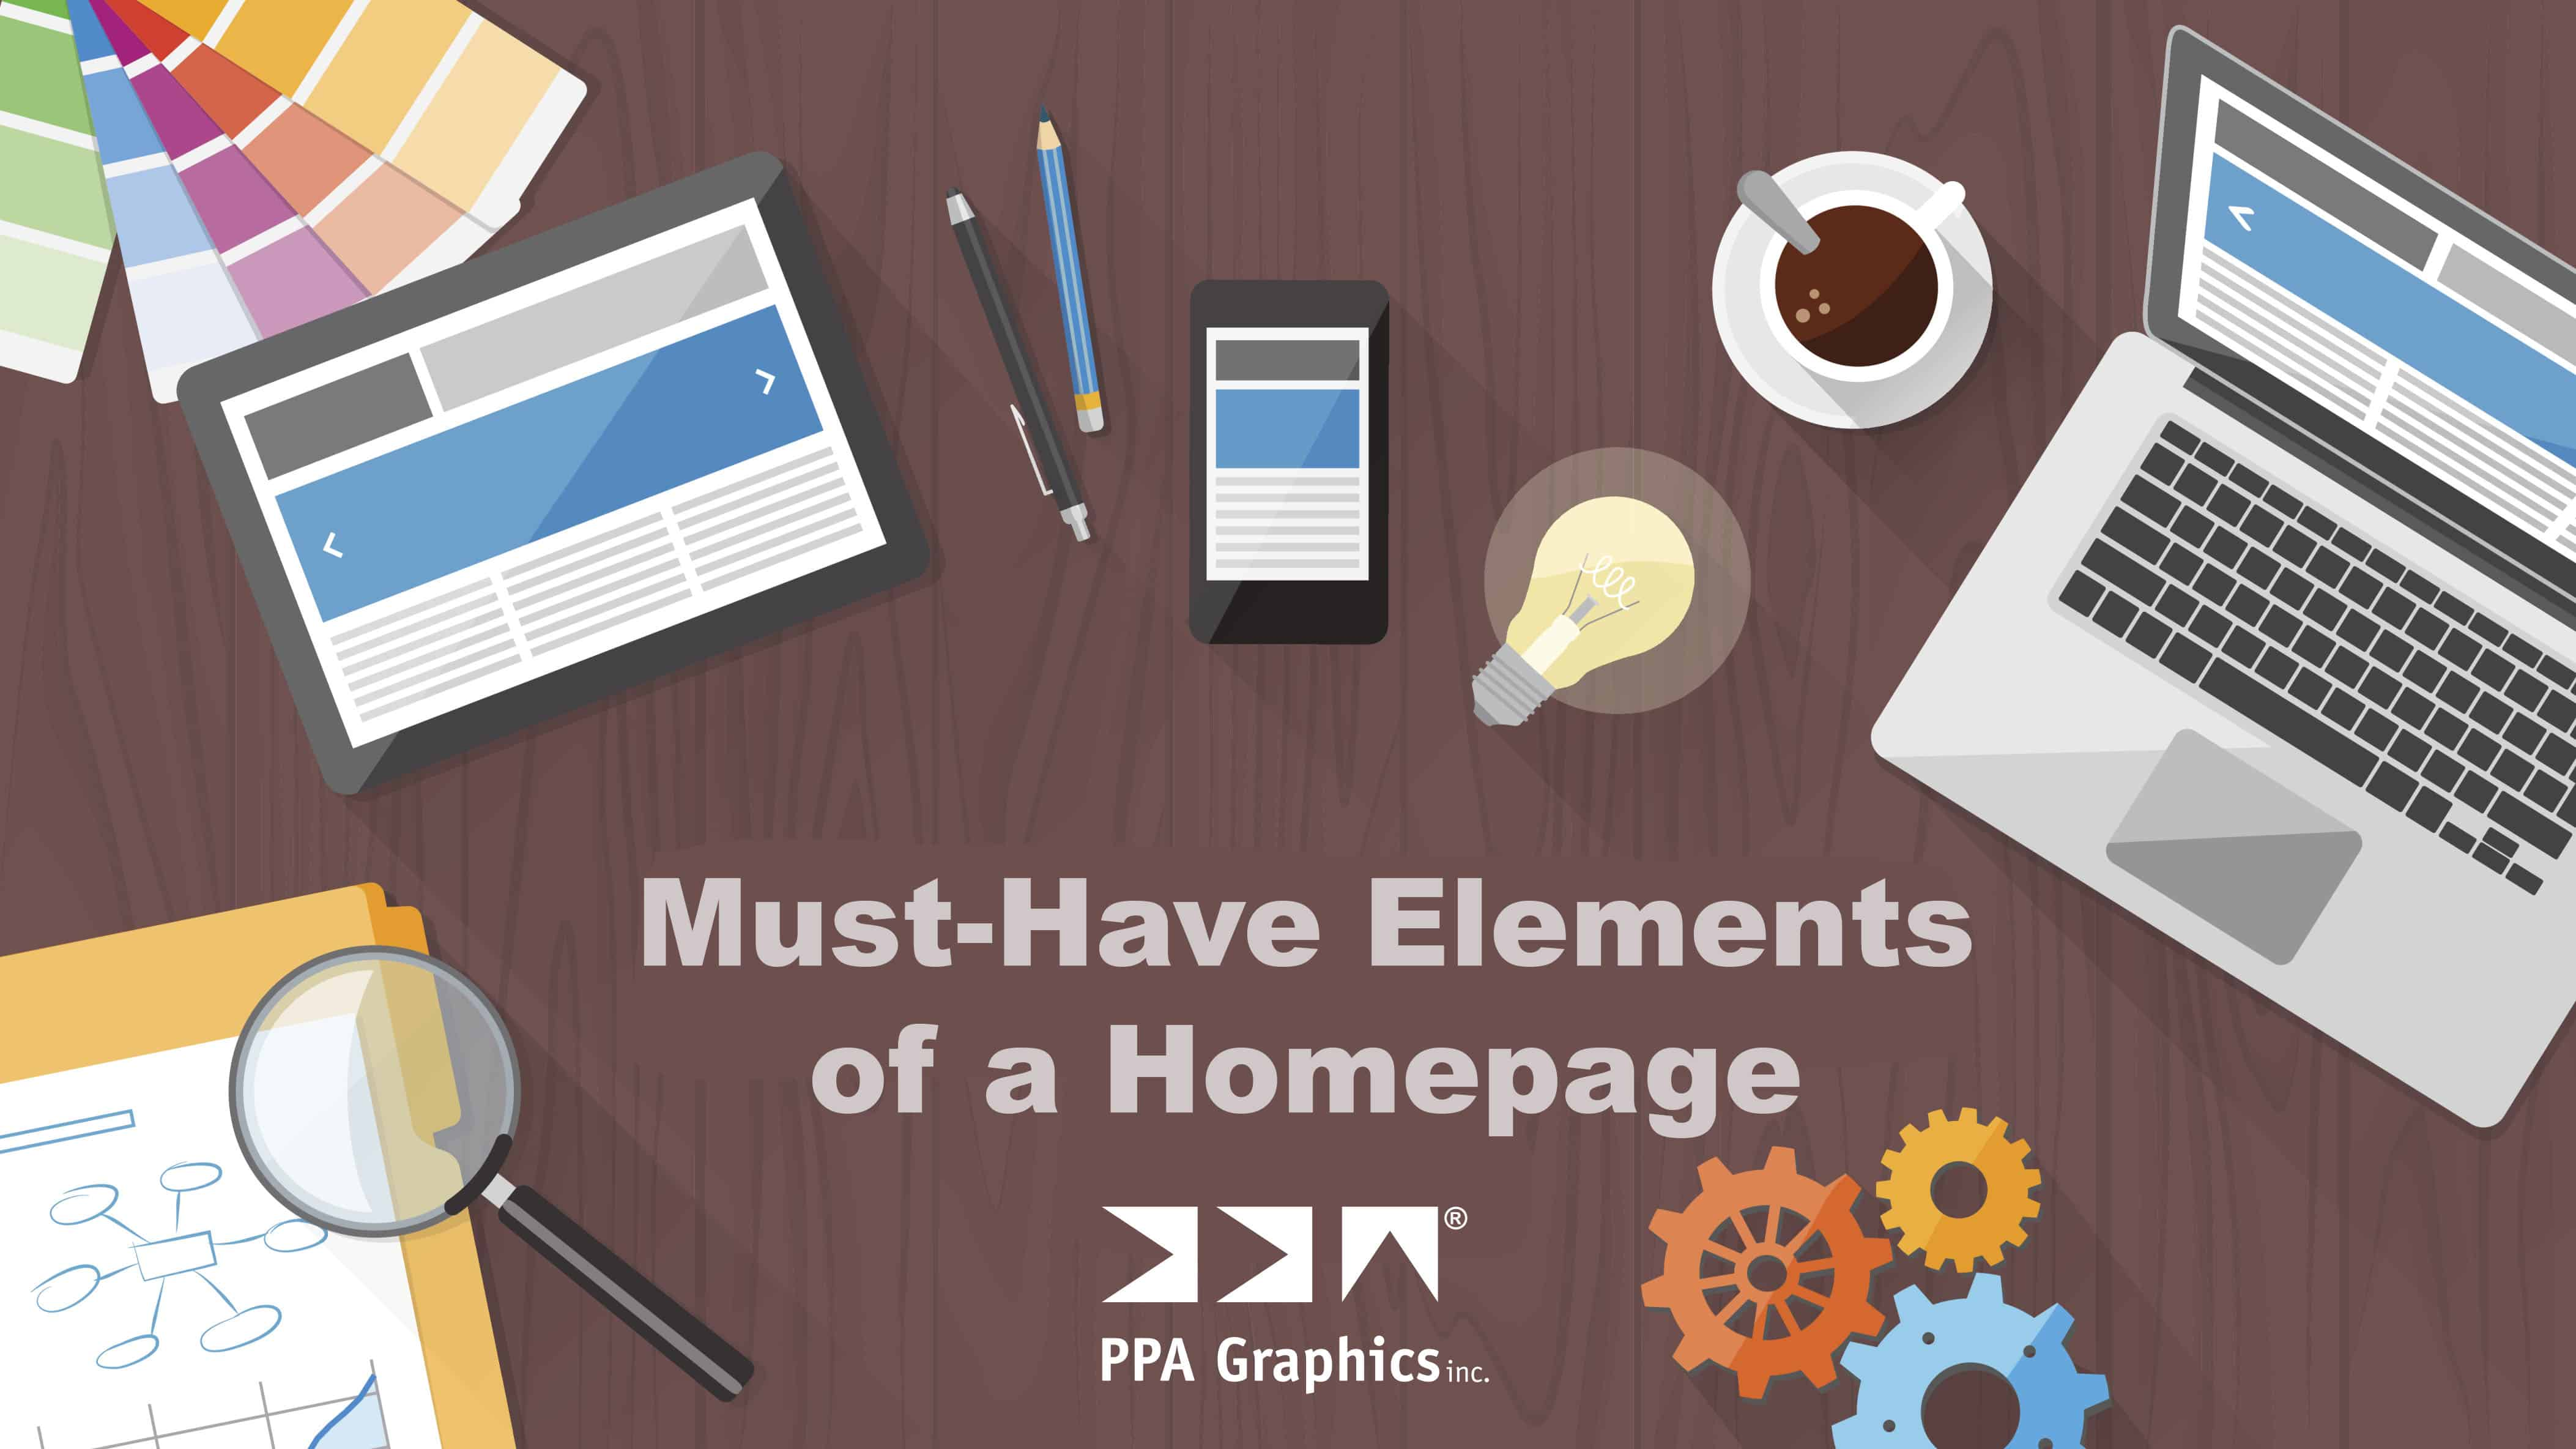 Must-Have Elements of a Homepage